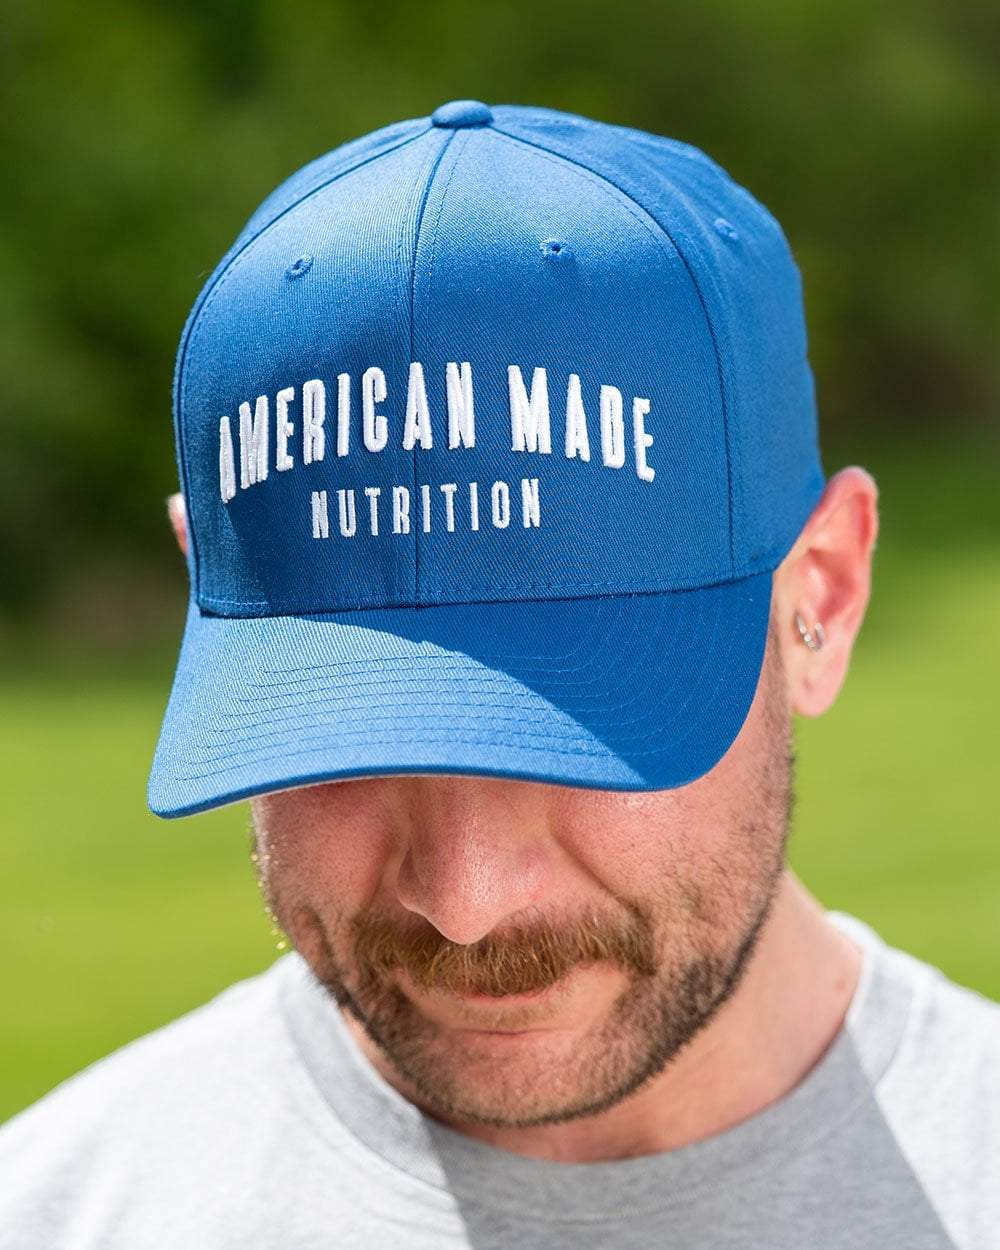 American Made Nutrition HATS S/M / Royal Blue Flexfit Hat